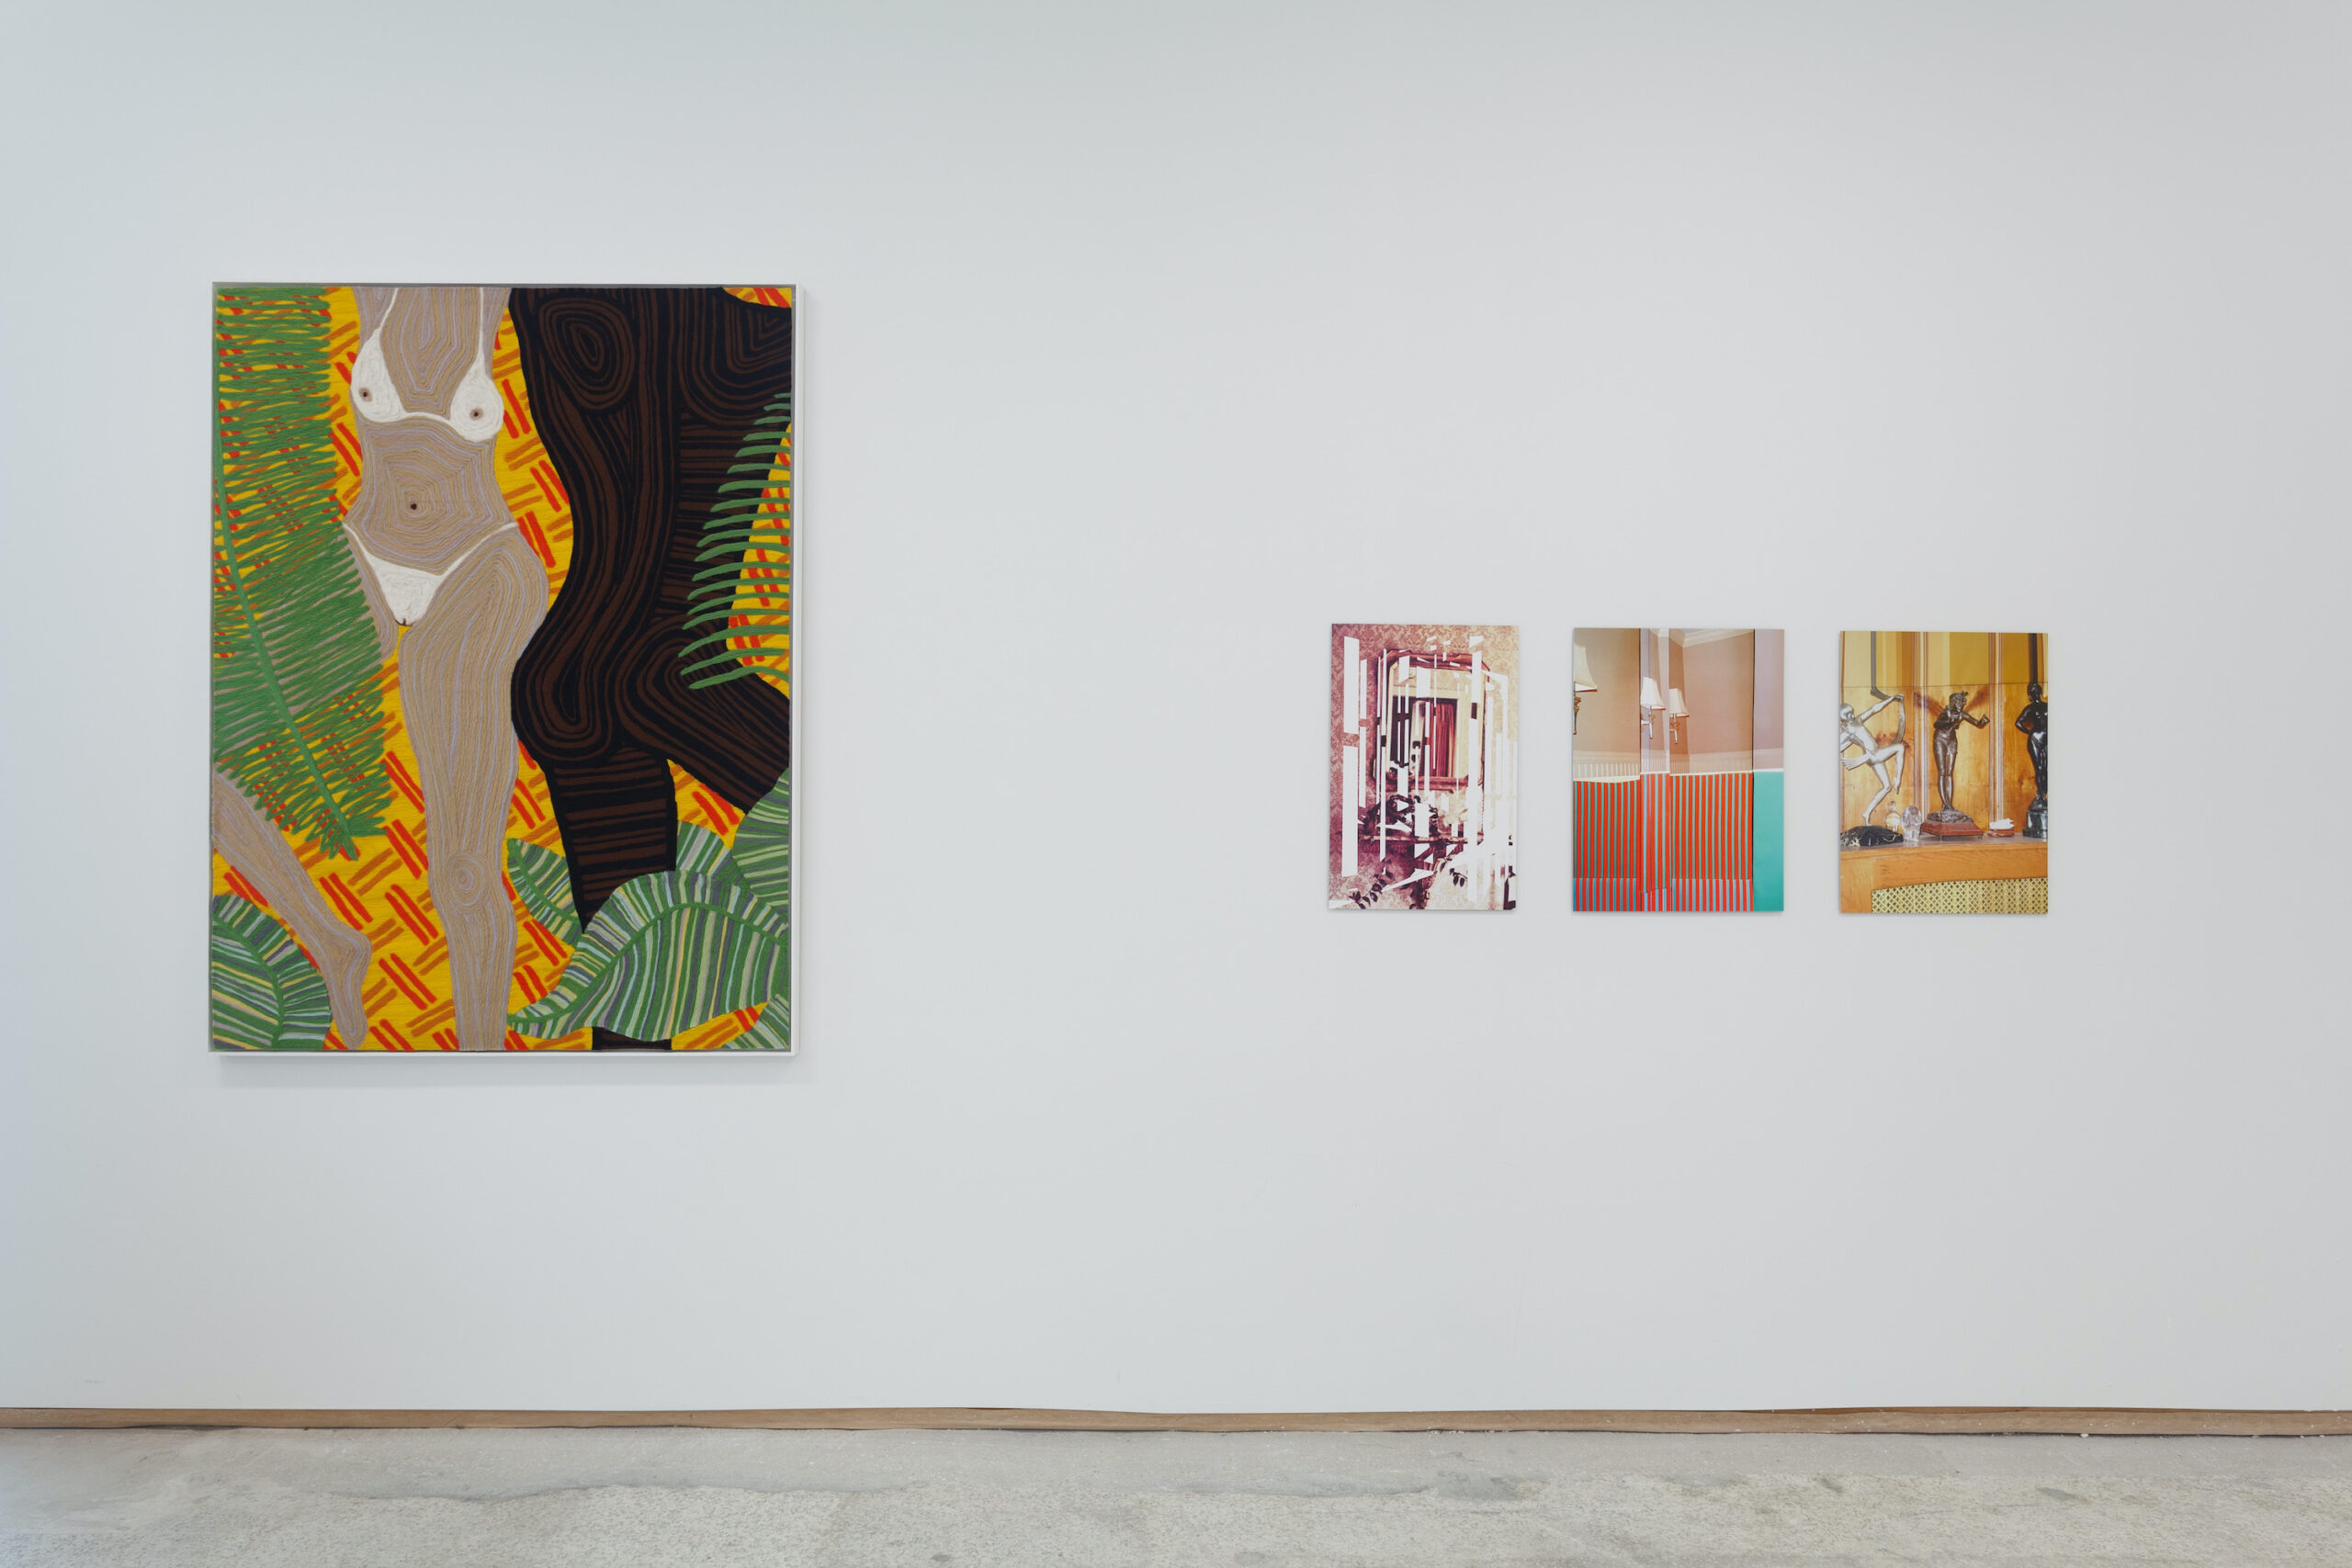 our constellations: astral embraces and tactual consciousness (Installation view d), 2021, Emerson Dorsch, Miami FL